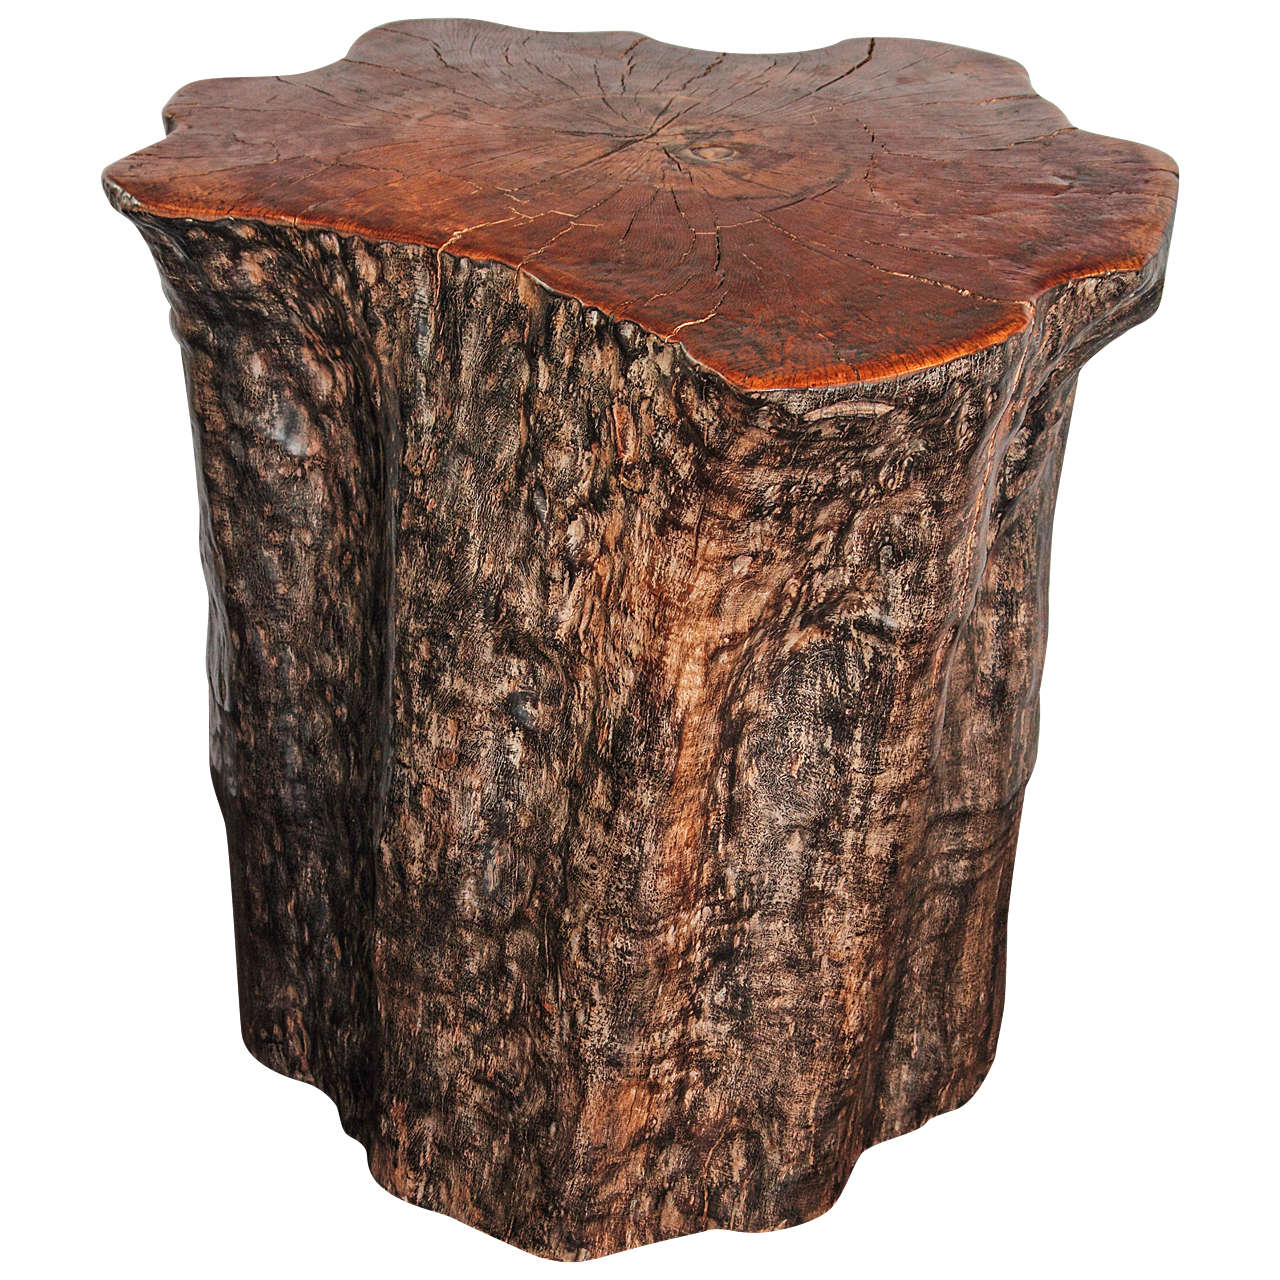 Ordinaire Organic Form Lychee Tree Trunk Pedestal Or End Table For Sale